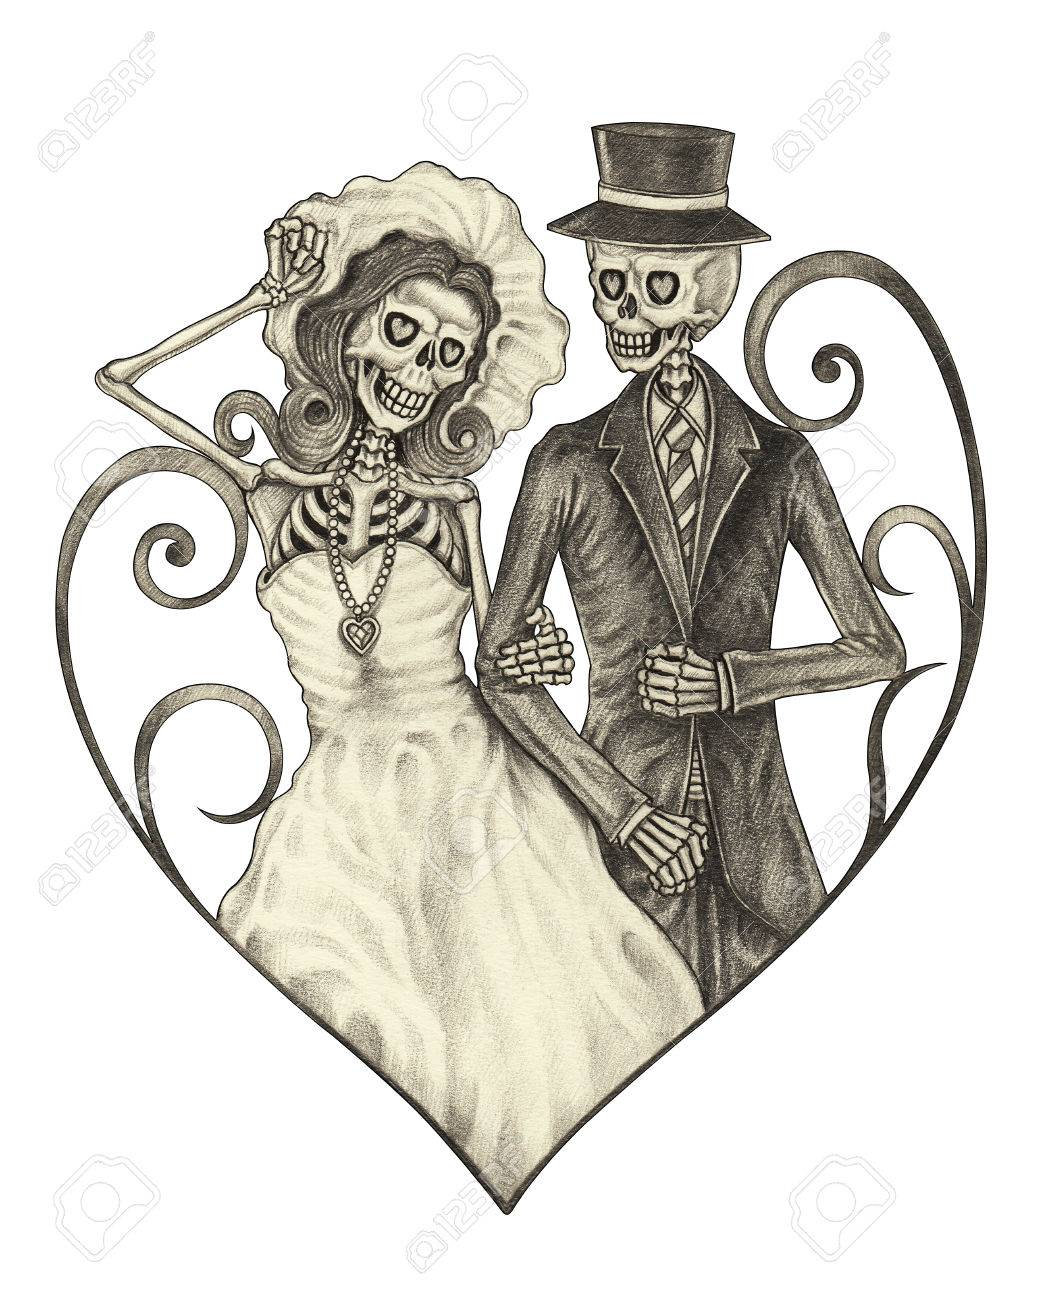 9d76106f0 Art design skull wedding in love action smiley face day of the dead  festival hand pencil